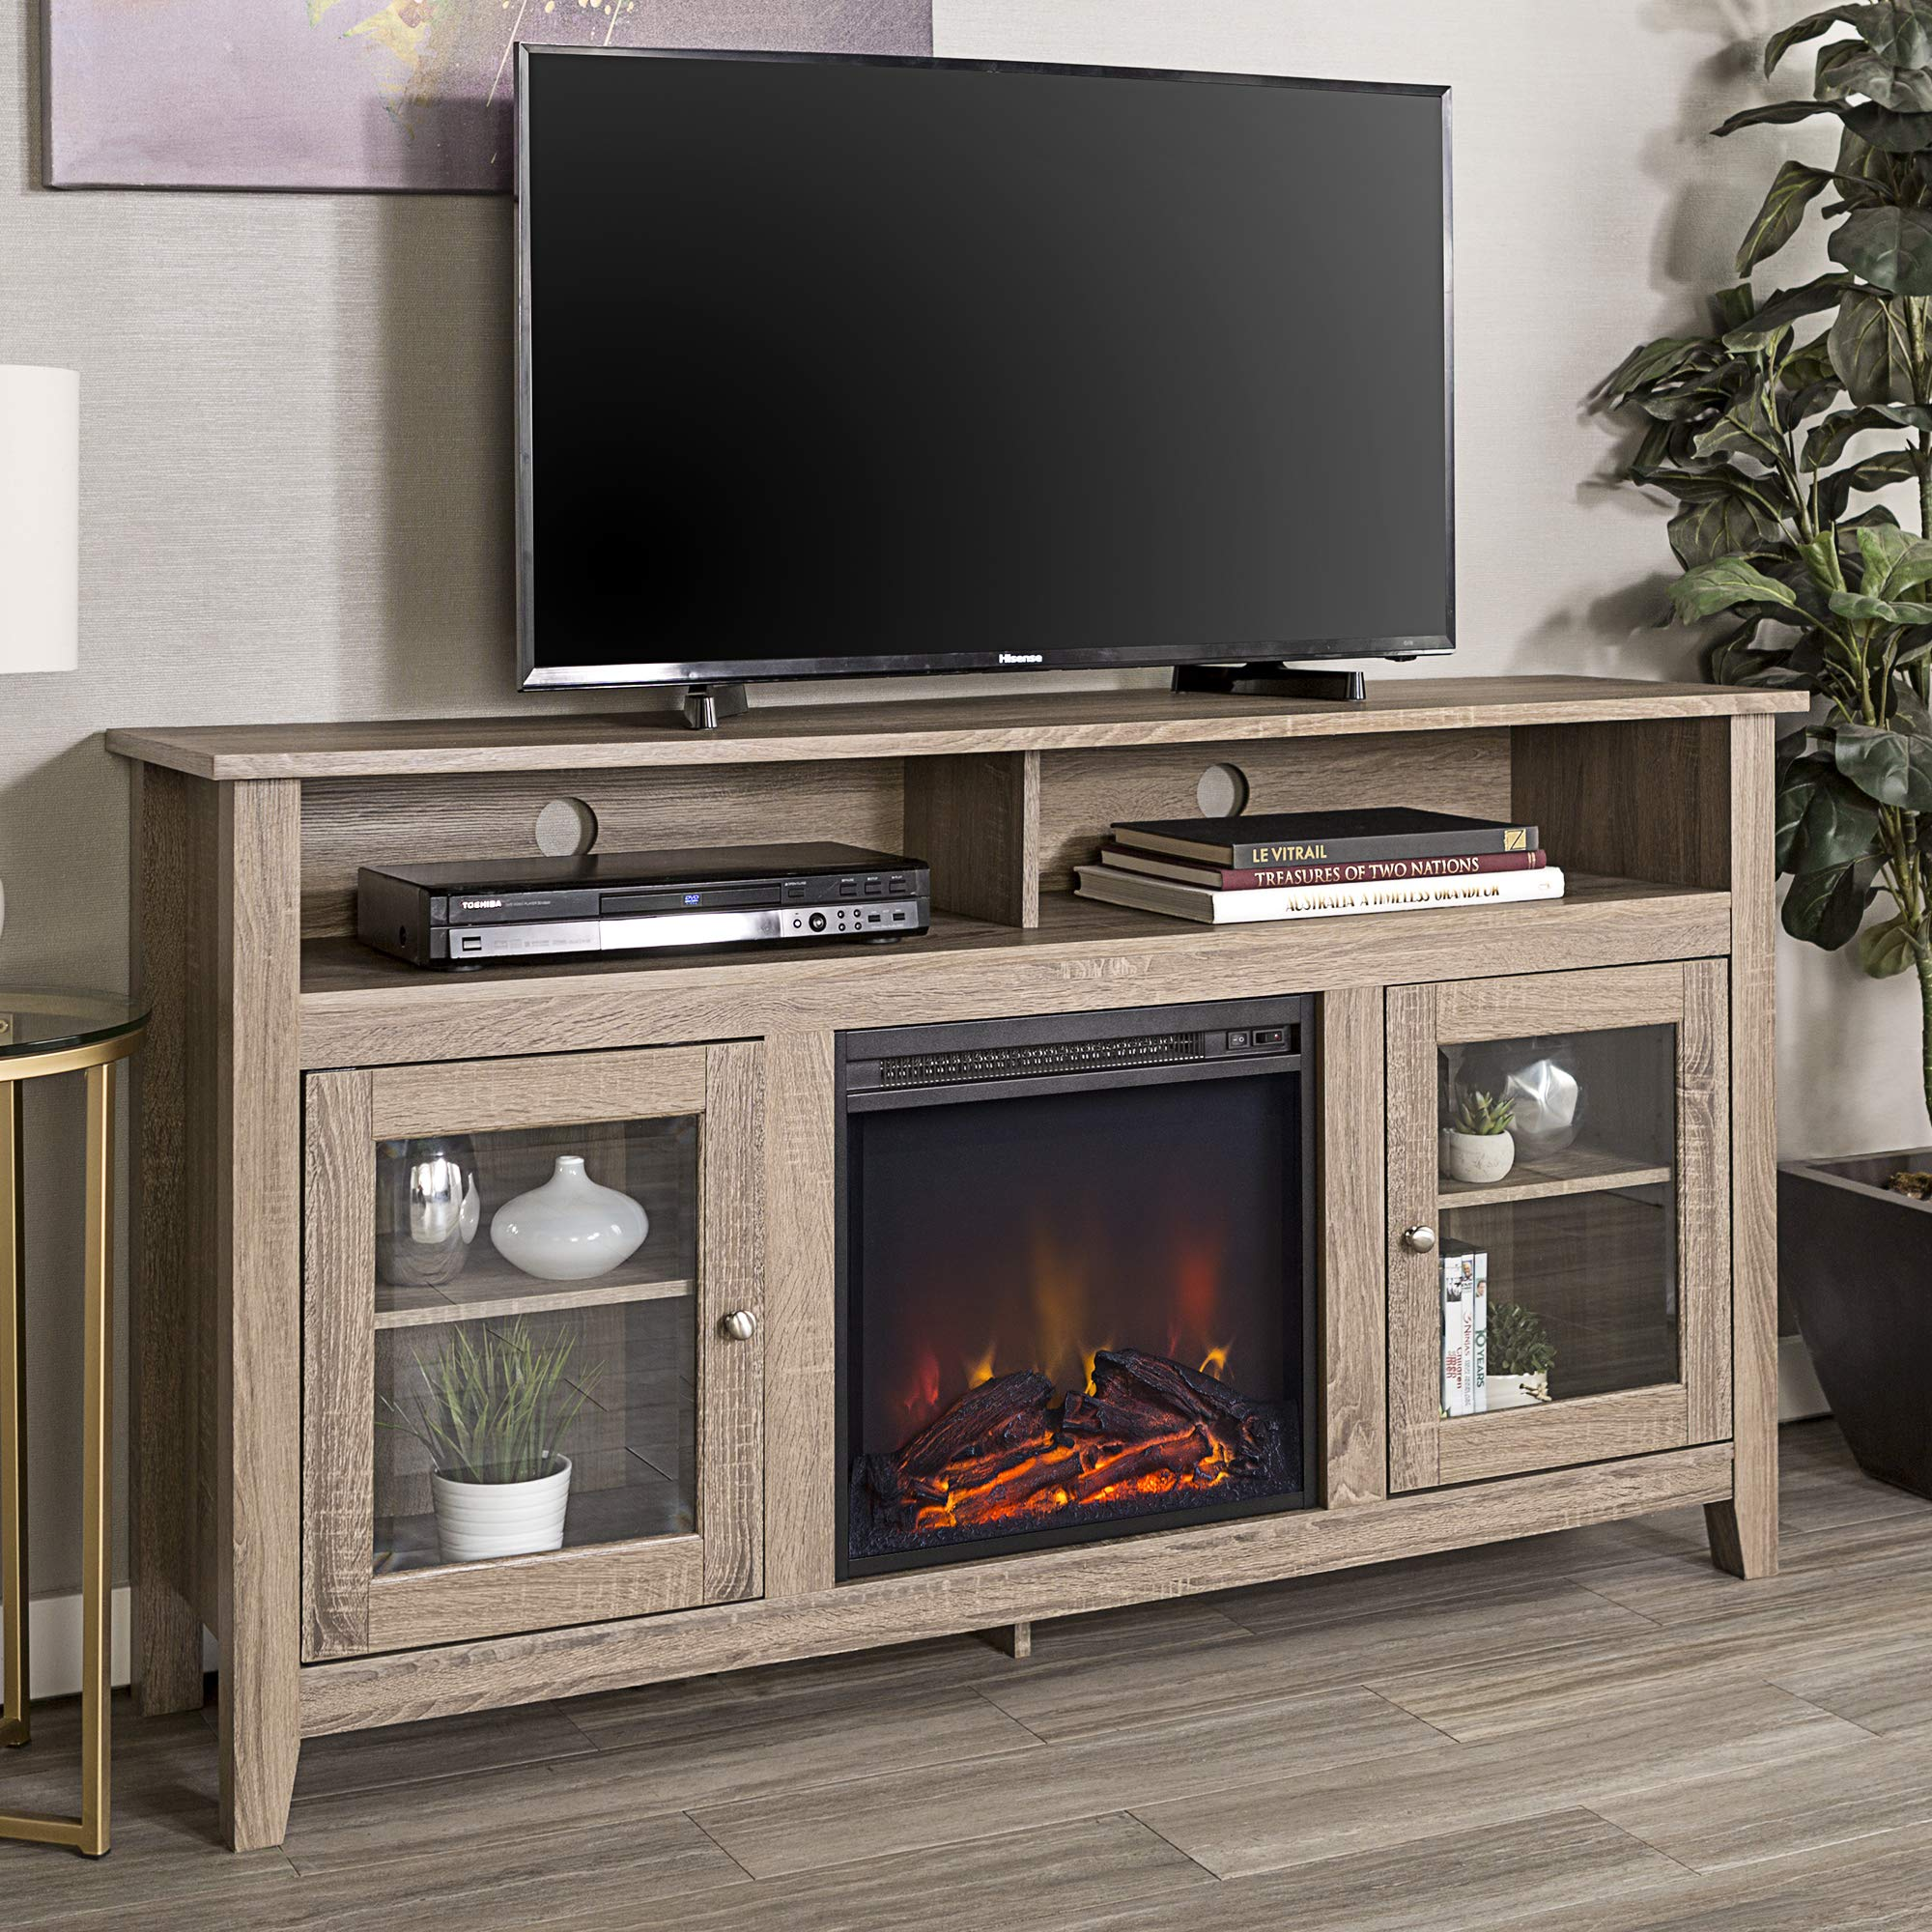 WE Furniture 58'' Driftwood Highboy Fireplace Modern Media TV Stand Console for Flat Screen TV's Up to 65'' Entertainment Center by WE Furniture